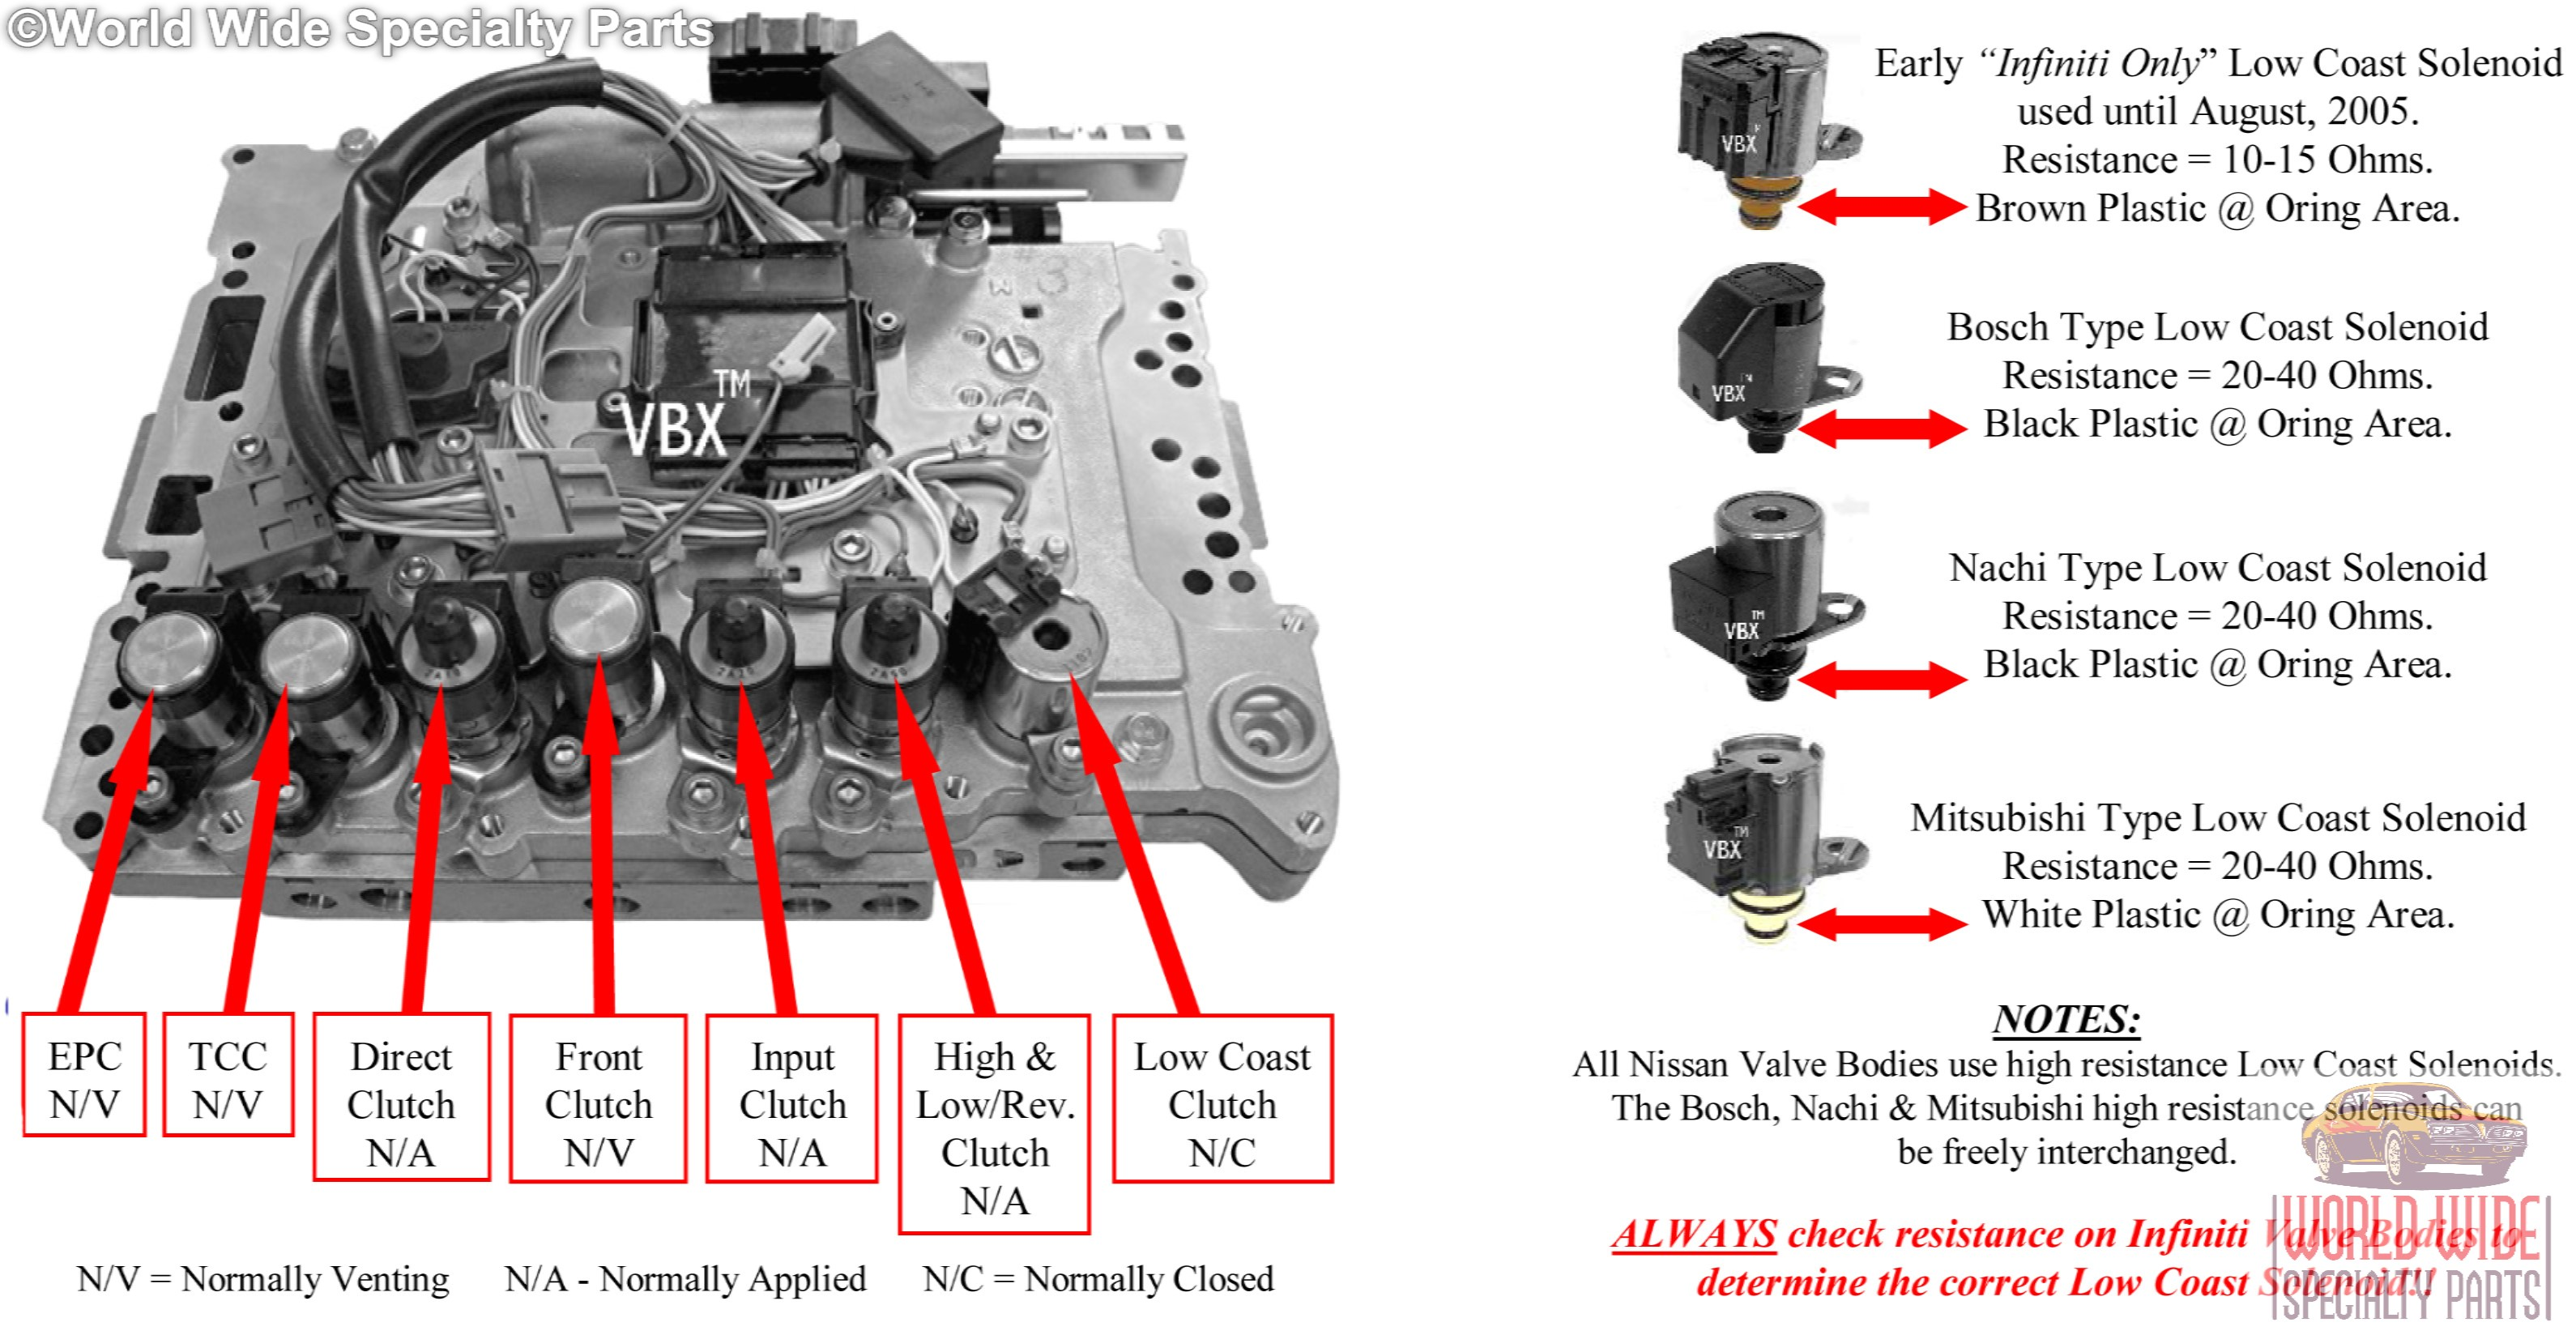 2005 Pontiac Sunfire Fuse Box Interior All Kind Of Wiring Diagrams Epc Hhr Free Engine Image For User Manual Download 2001